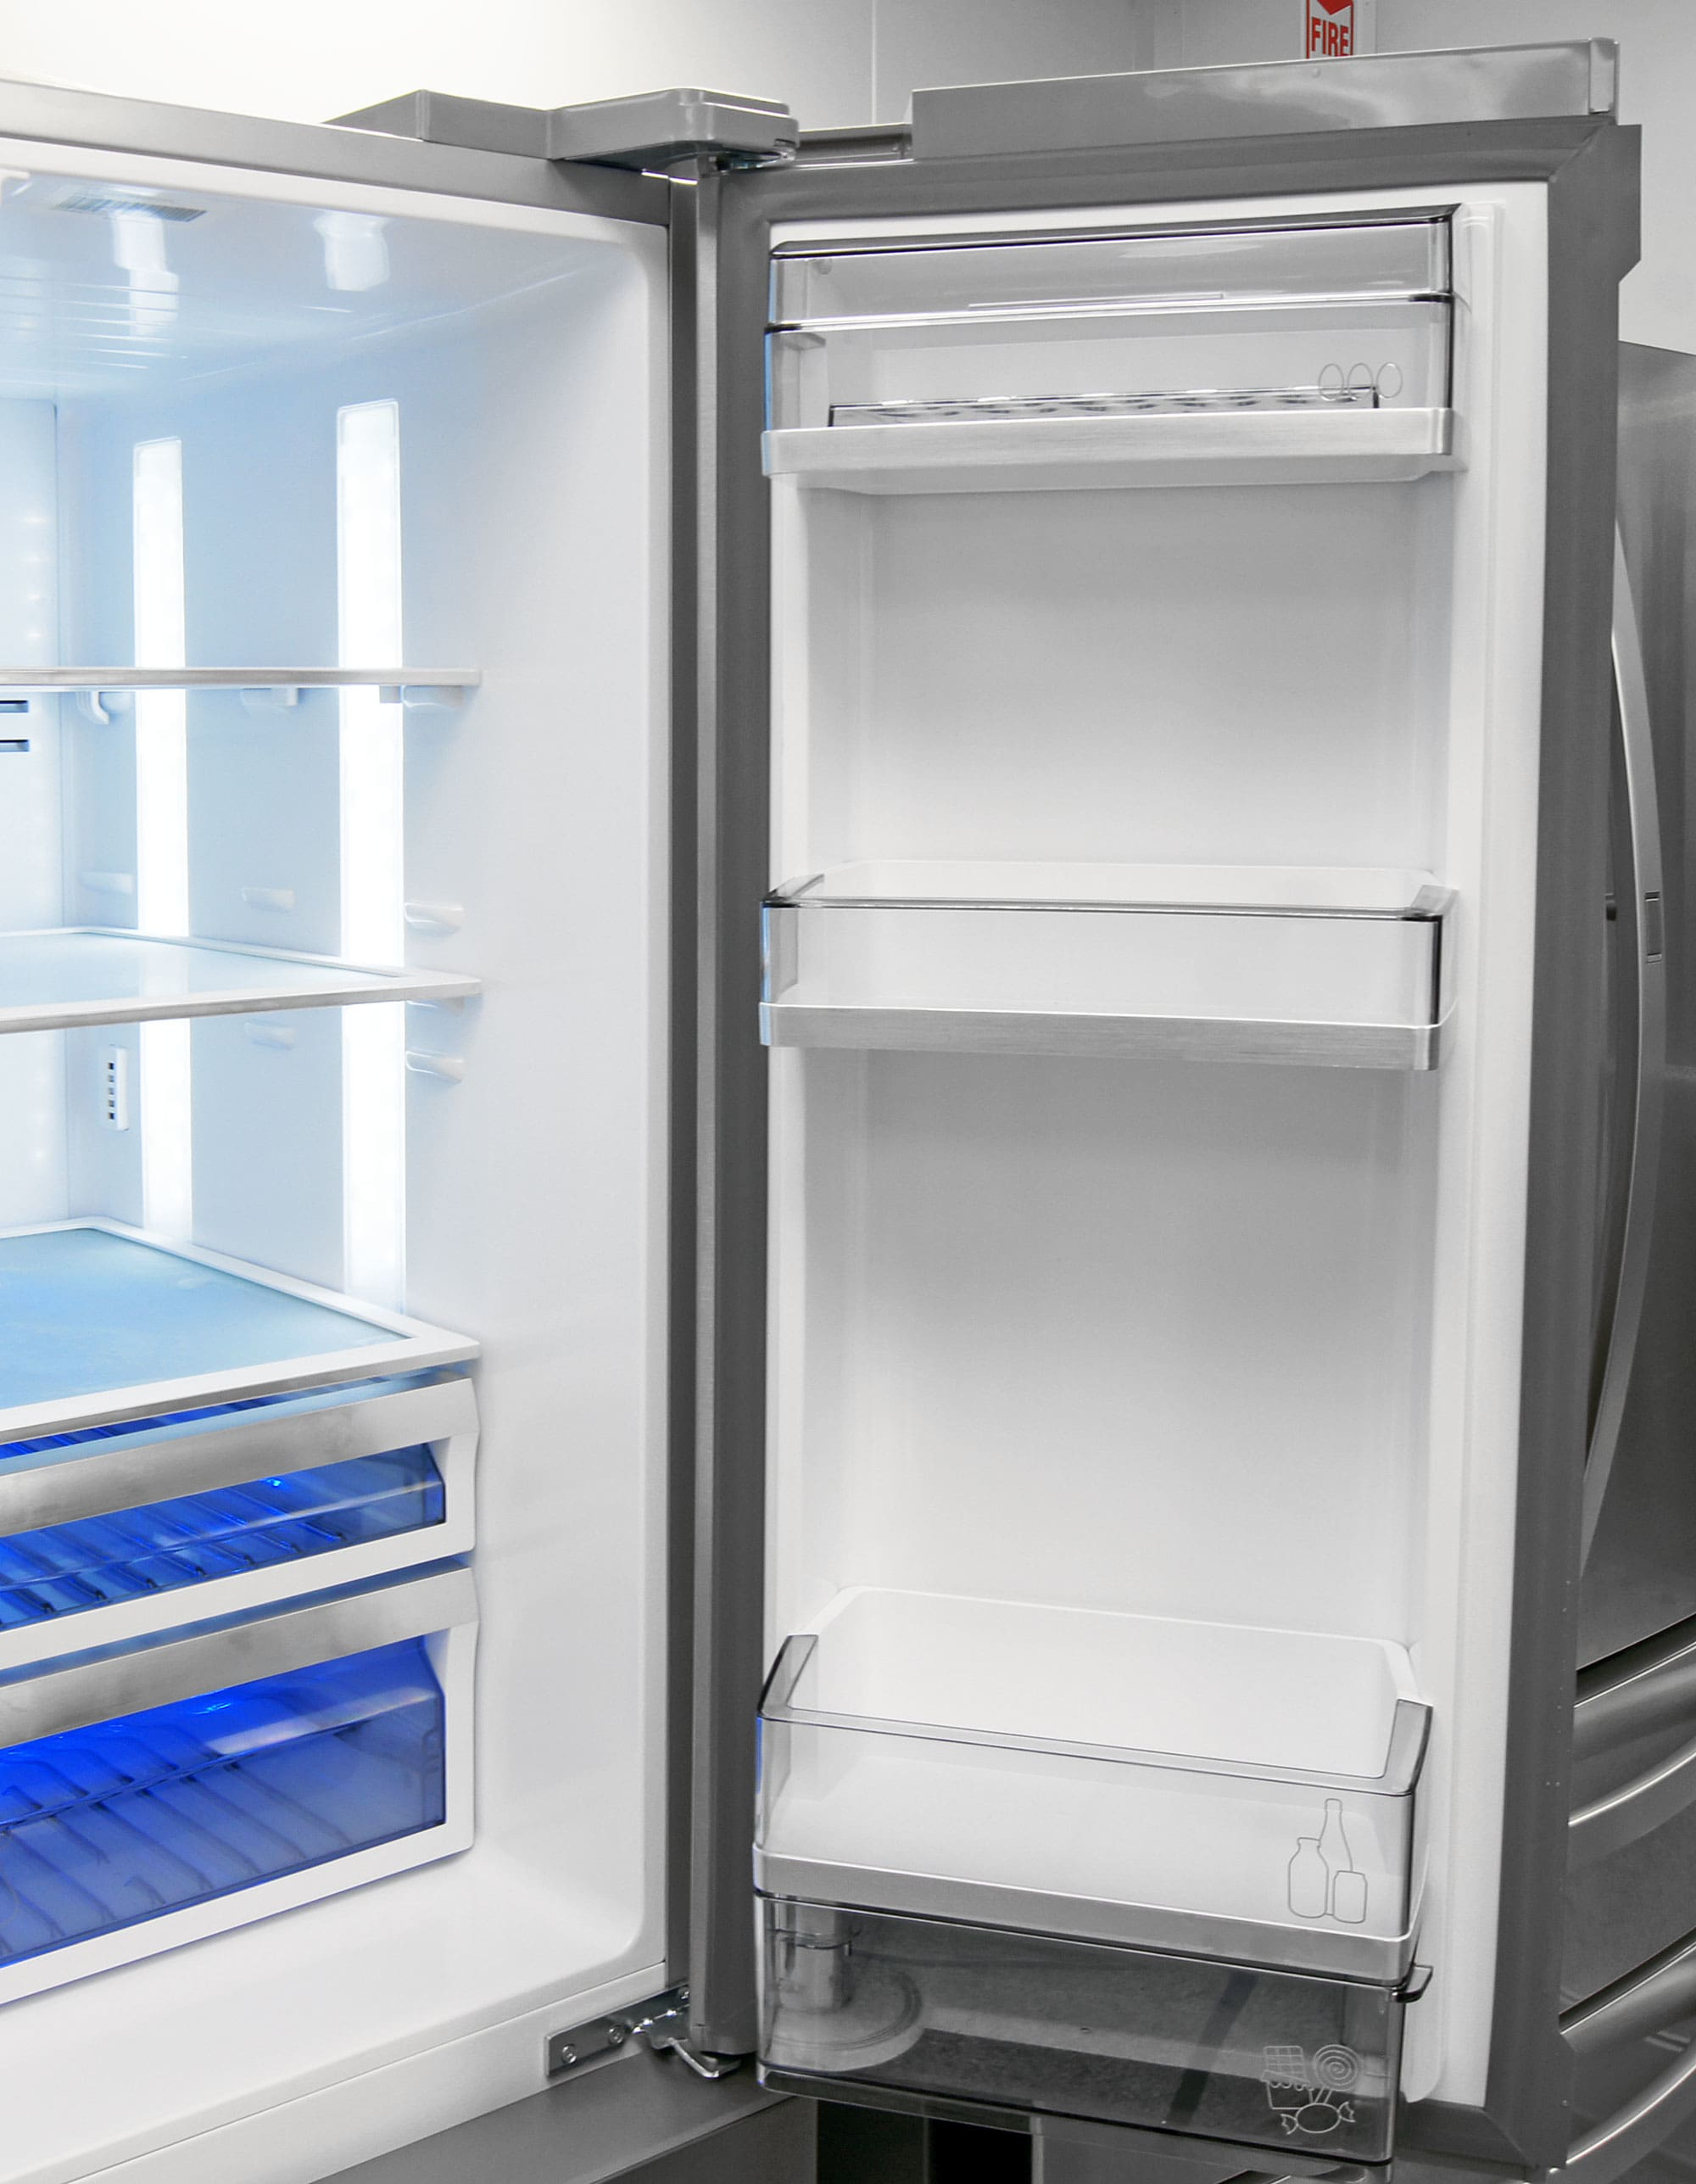 Even the bucket shelves on the Dacor DTF364SIWS's right fridge door are unadjustable.